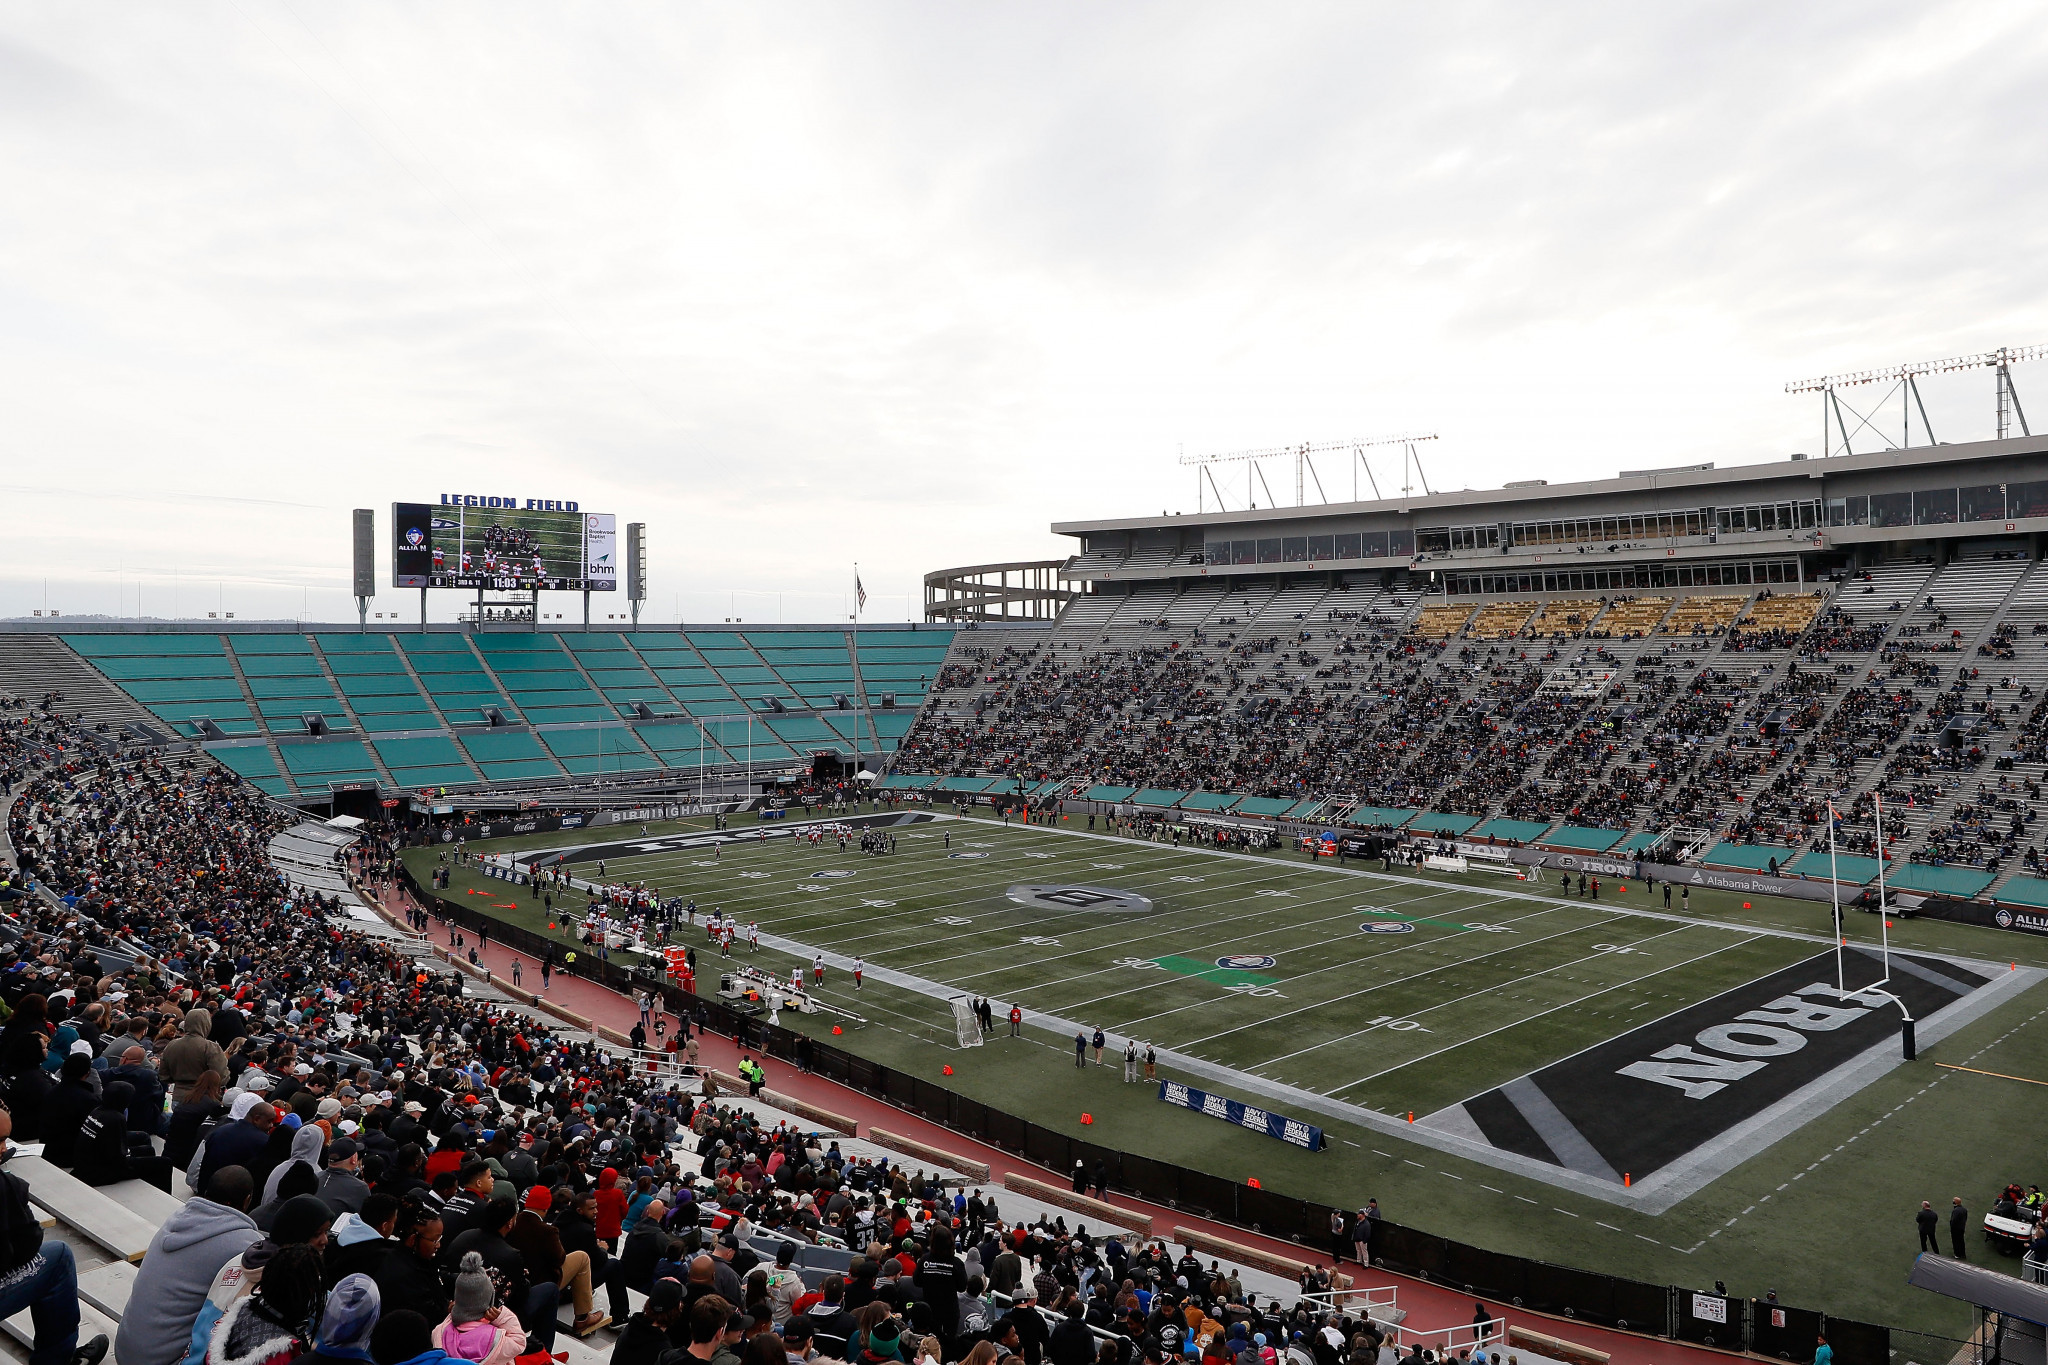 Legion Field is the flag football venue for the 2022 World Games ©Getty Images